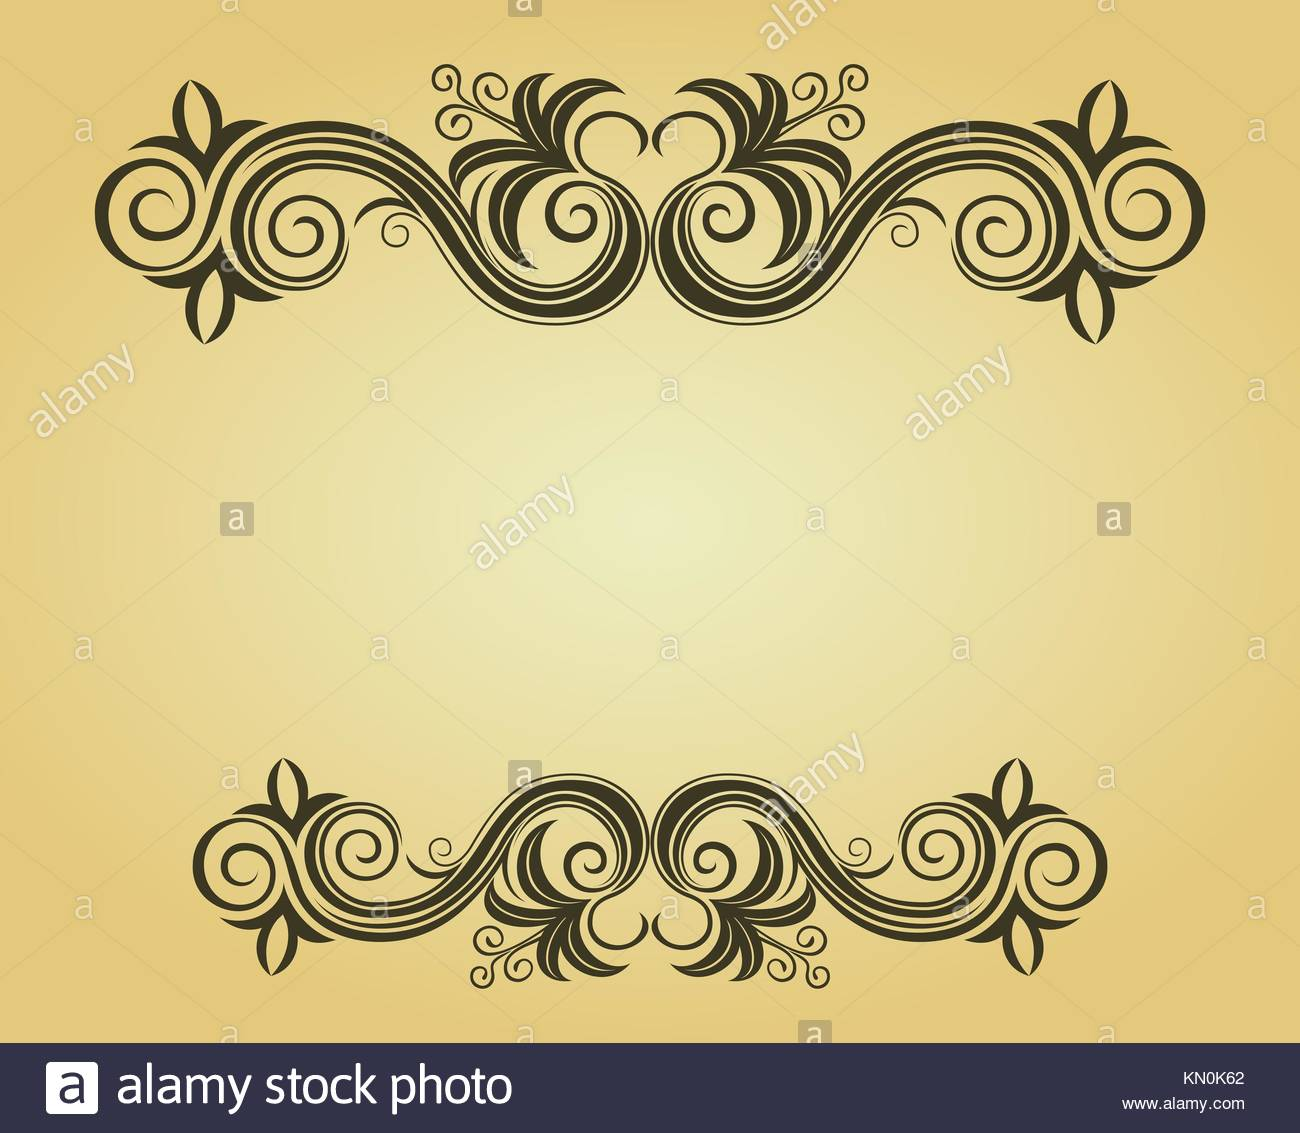 Vintage frame in victorian style for ornate and design - Stock Image